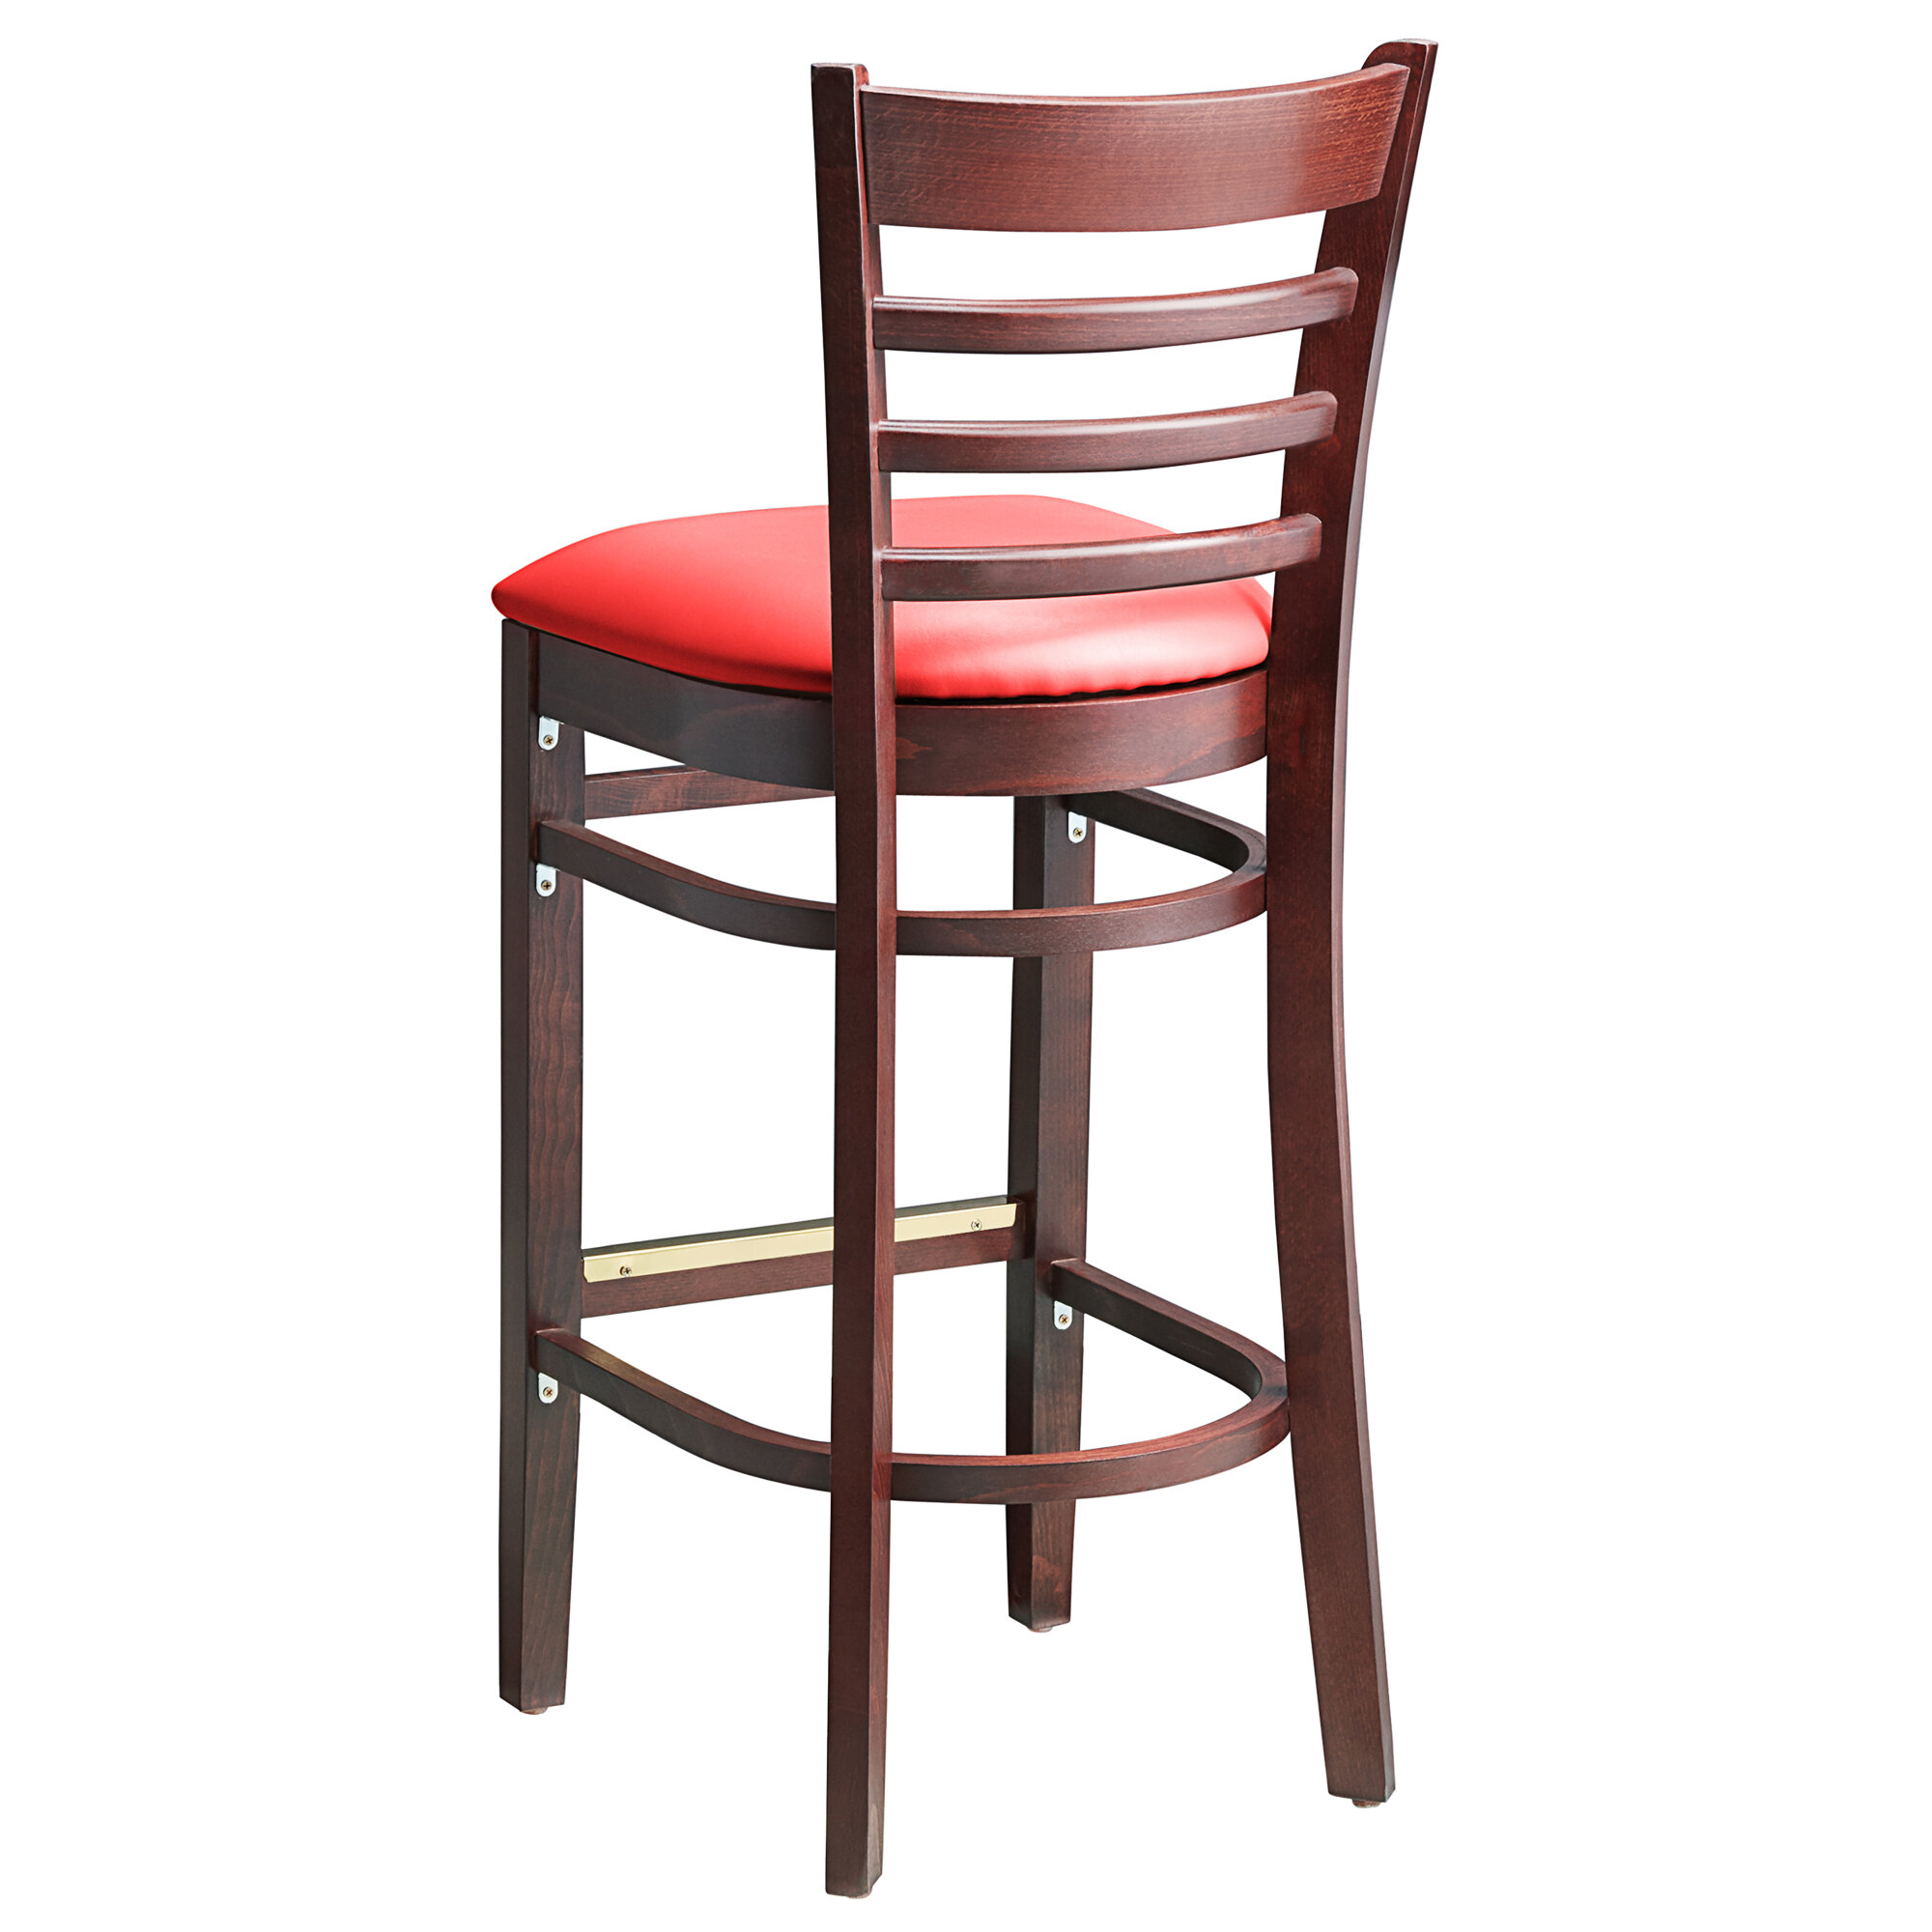 #69 - Mahogany Wood Finished Ladder Back Restaurant Barstool with Red Vinyl Seat